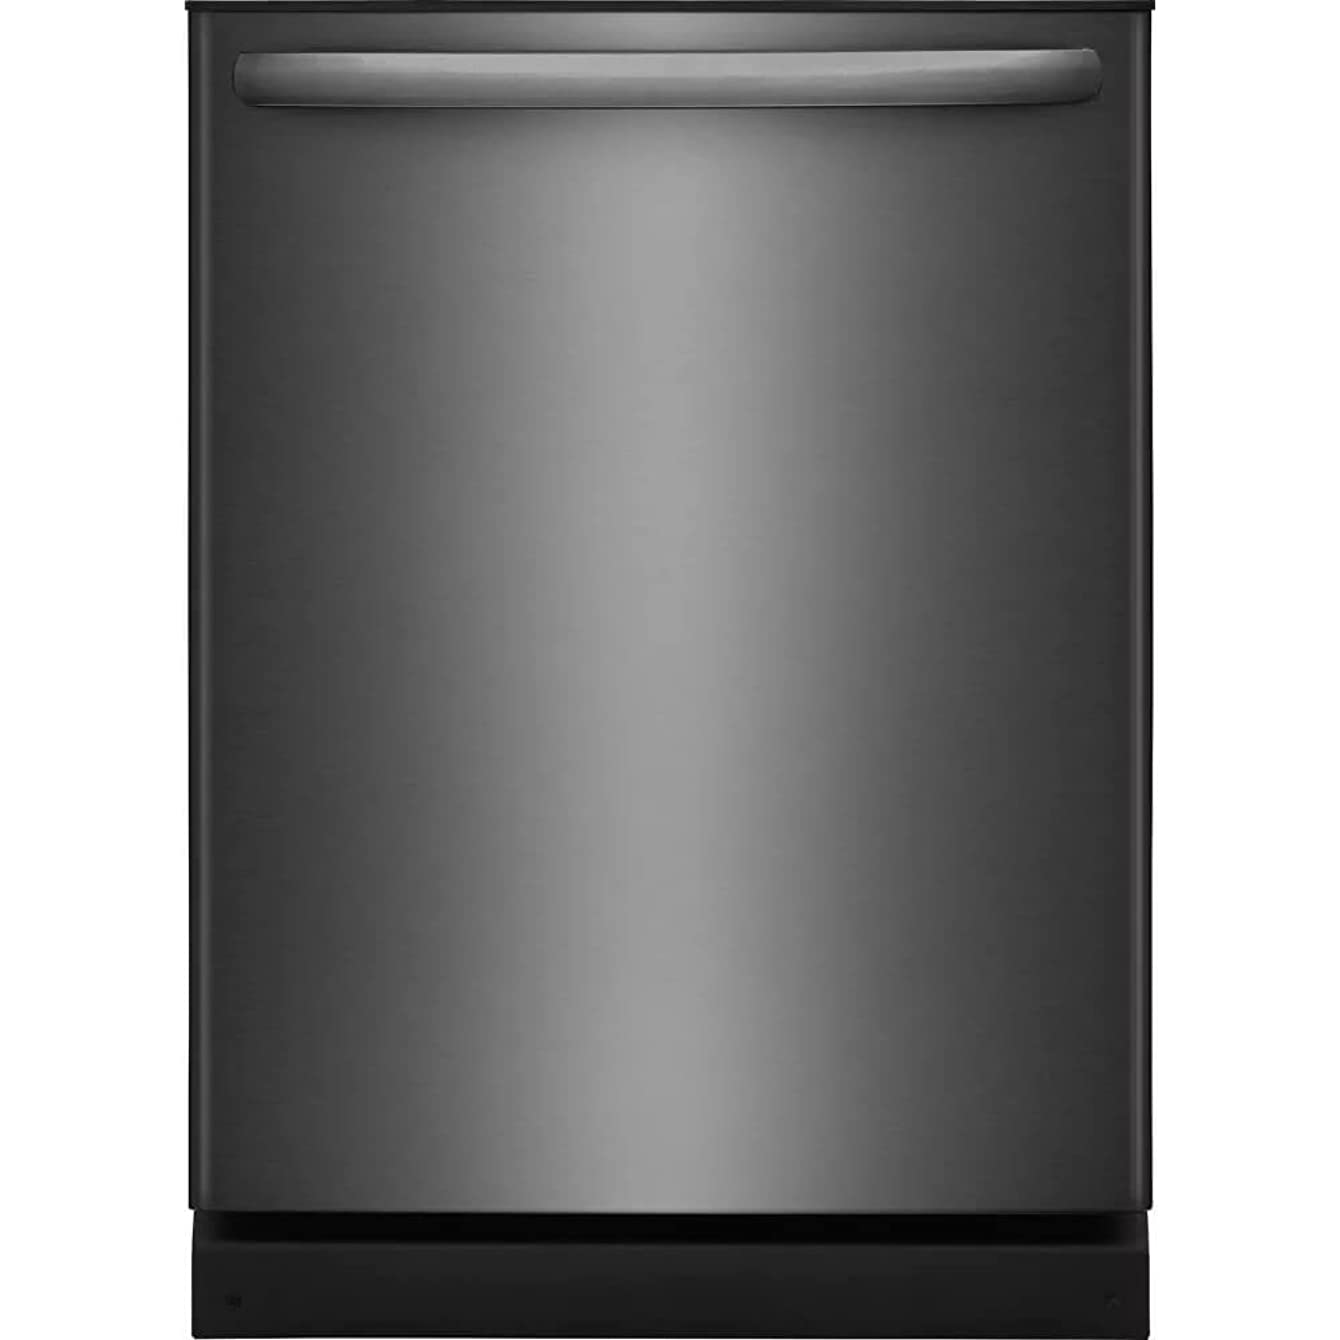 Frigidaire FFID2426TD 24'' Built-in Dishwasher, 24 inch, Black Stainless